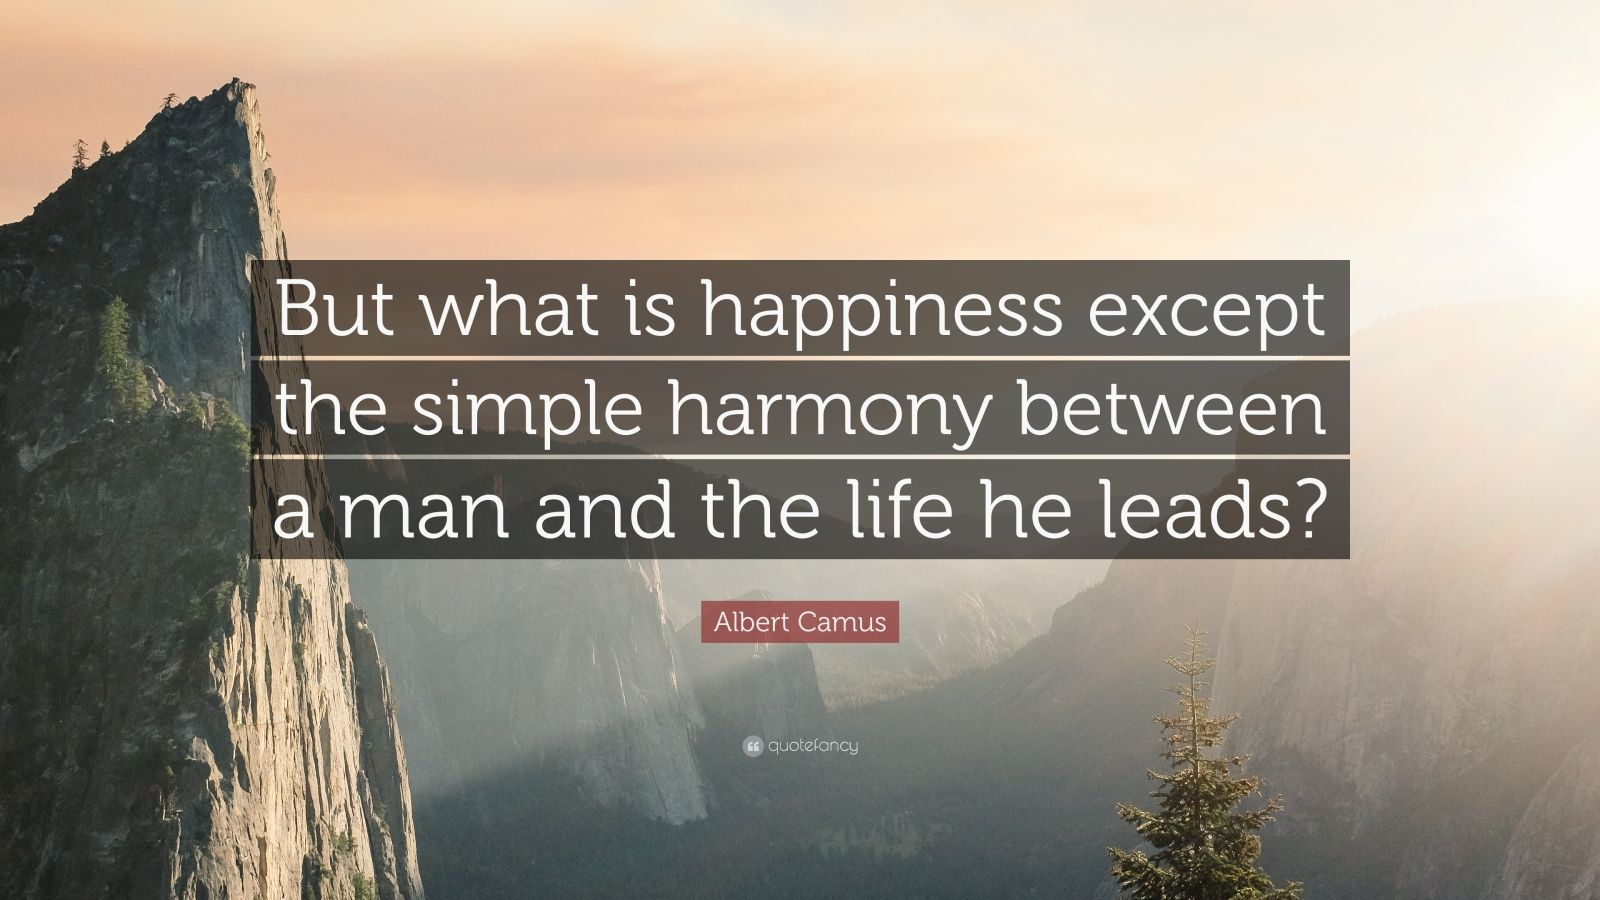 but what is happiness except the simple harmony